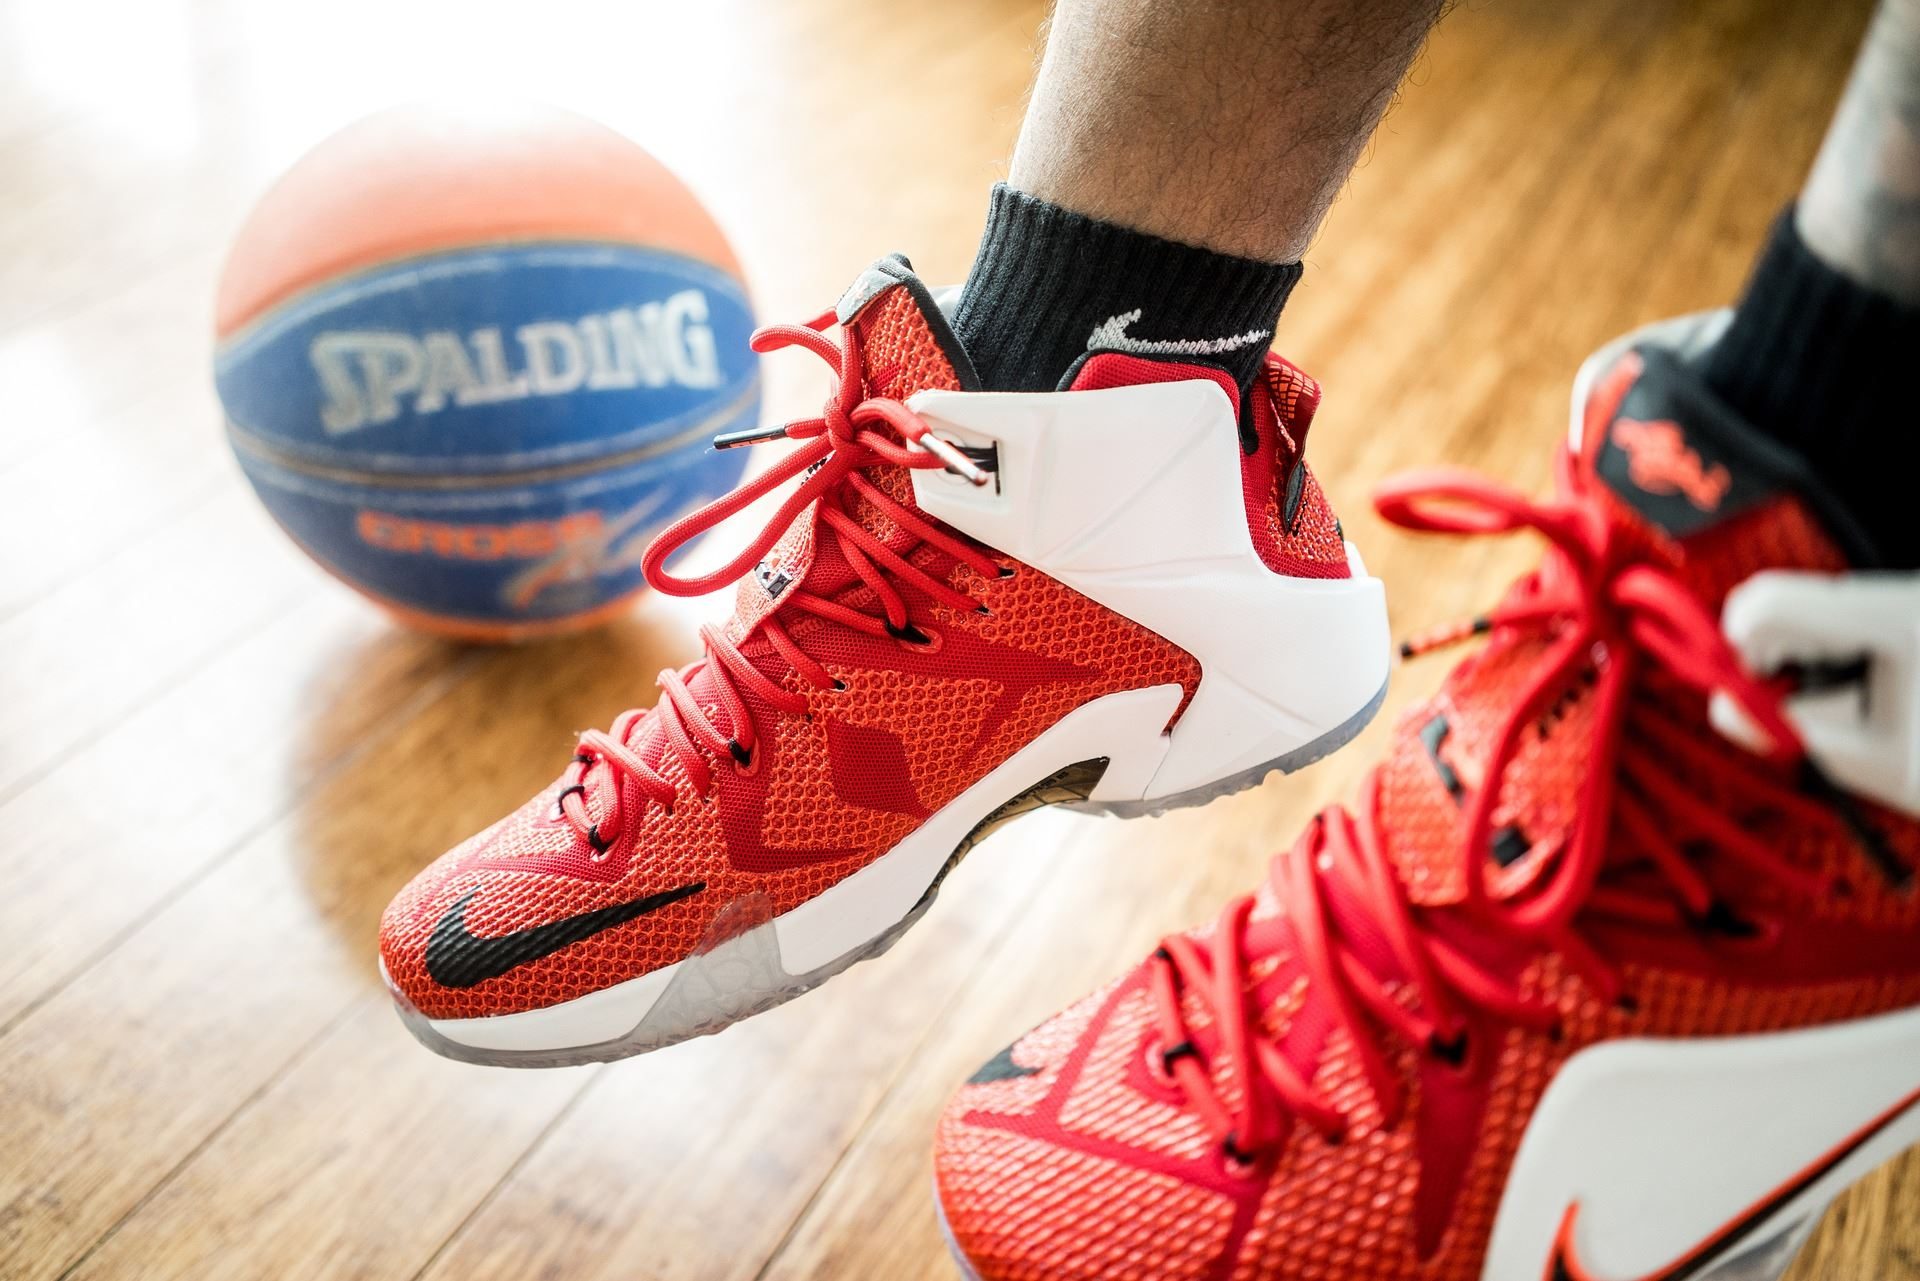 photo of red shoes and a basketball